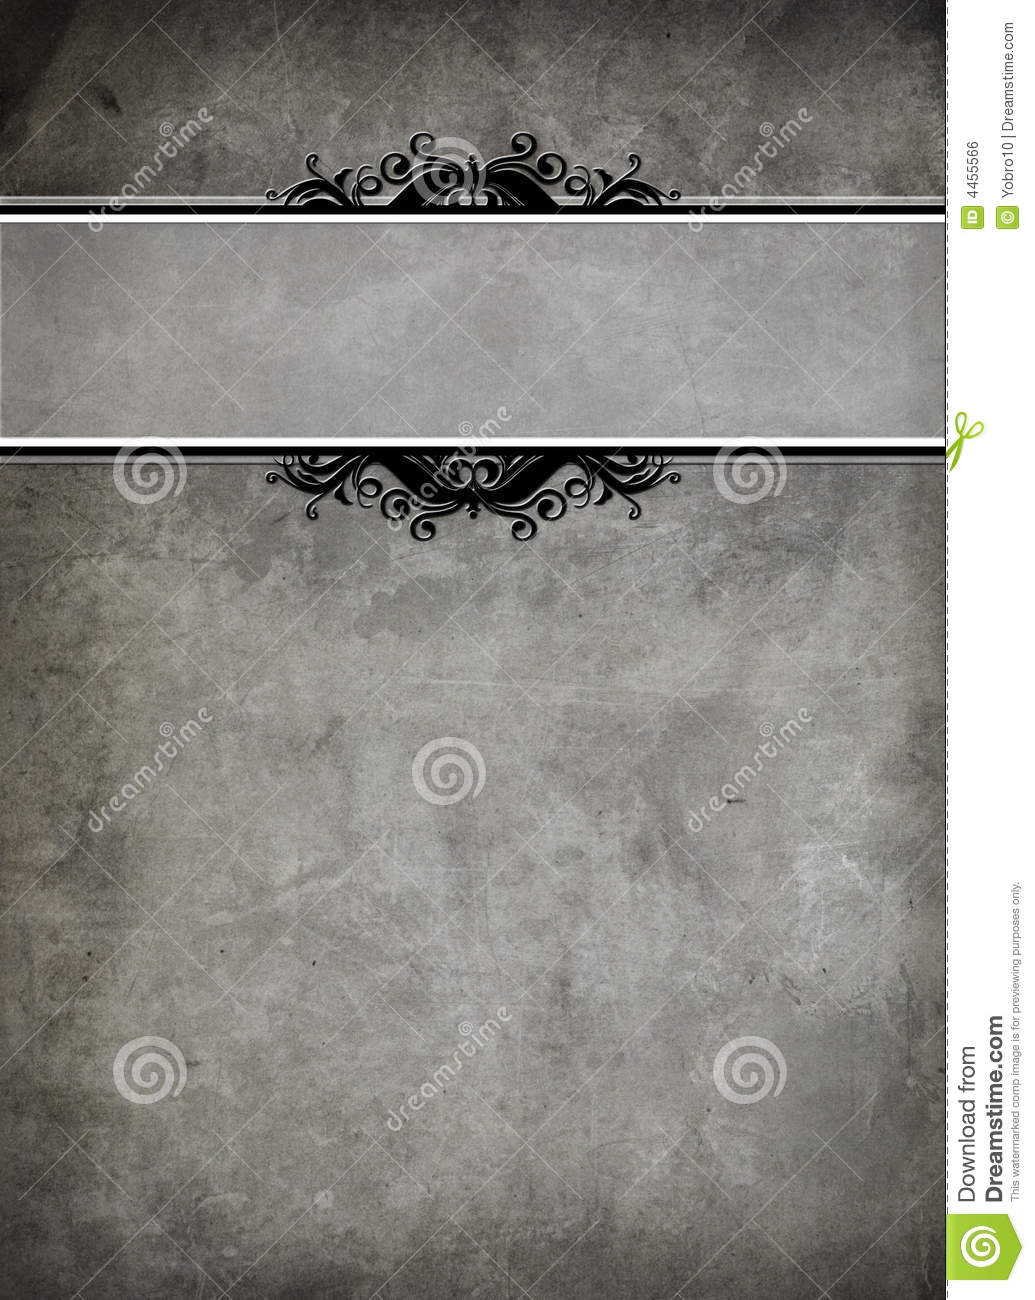 Book Cover Stock Art : Ancient book cover stock illustration of